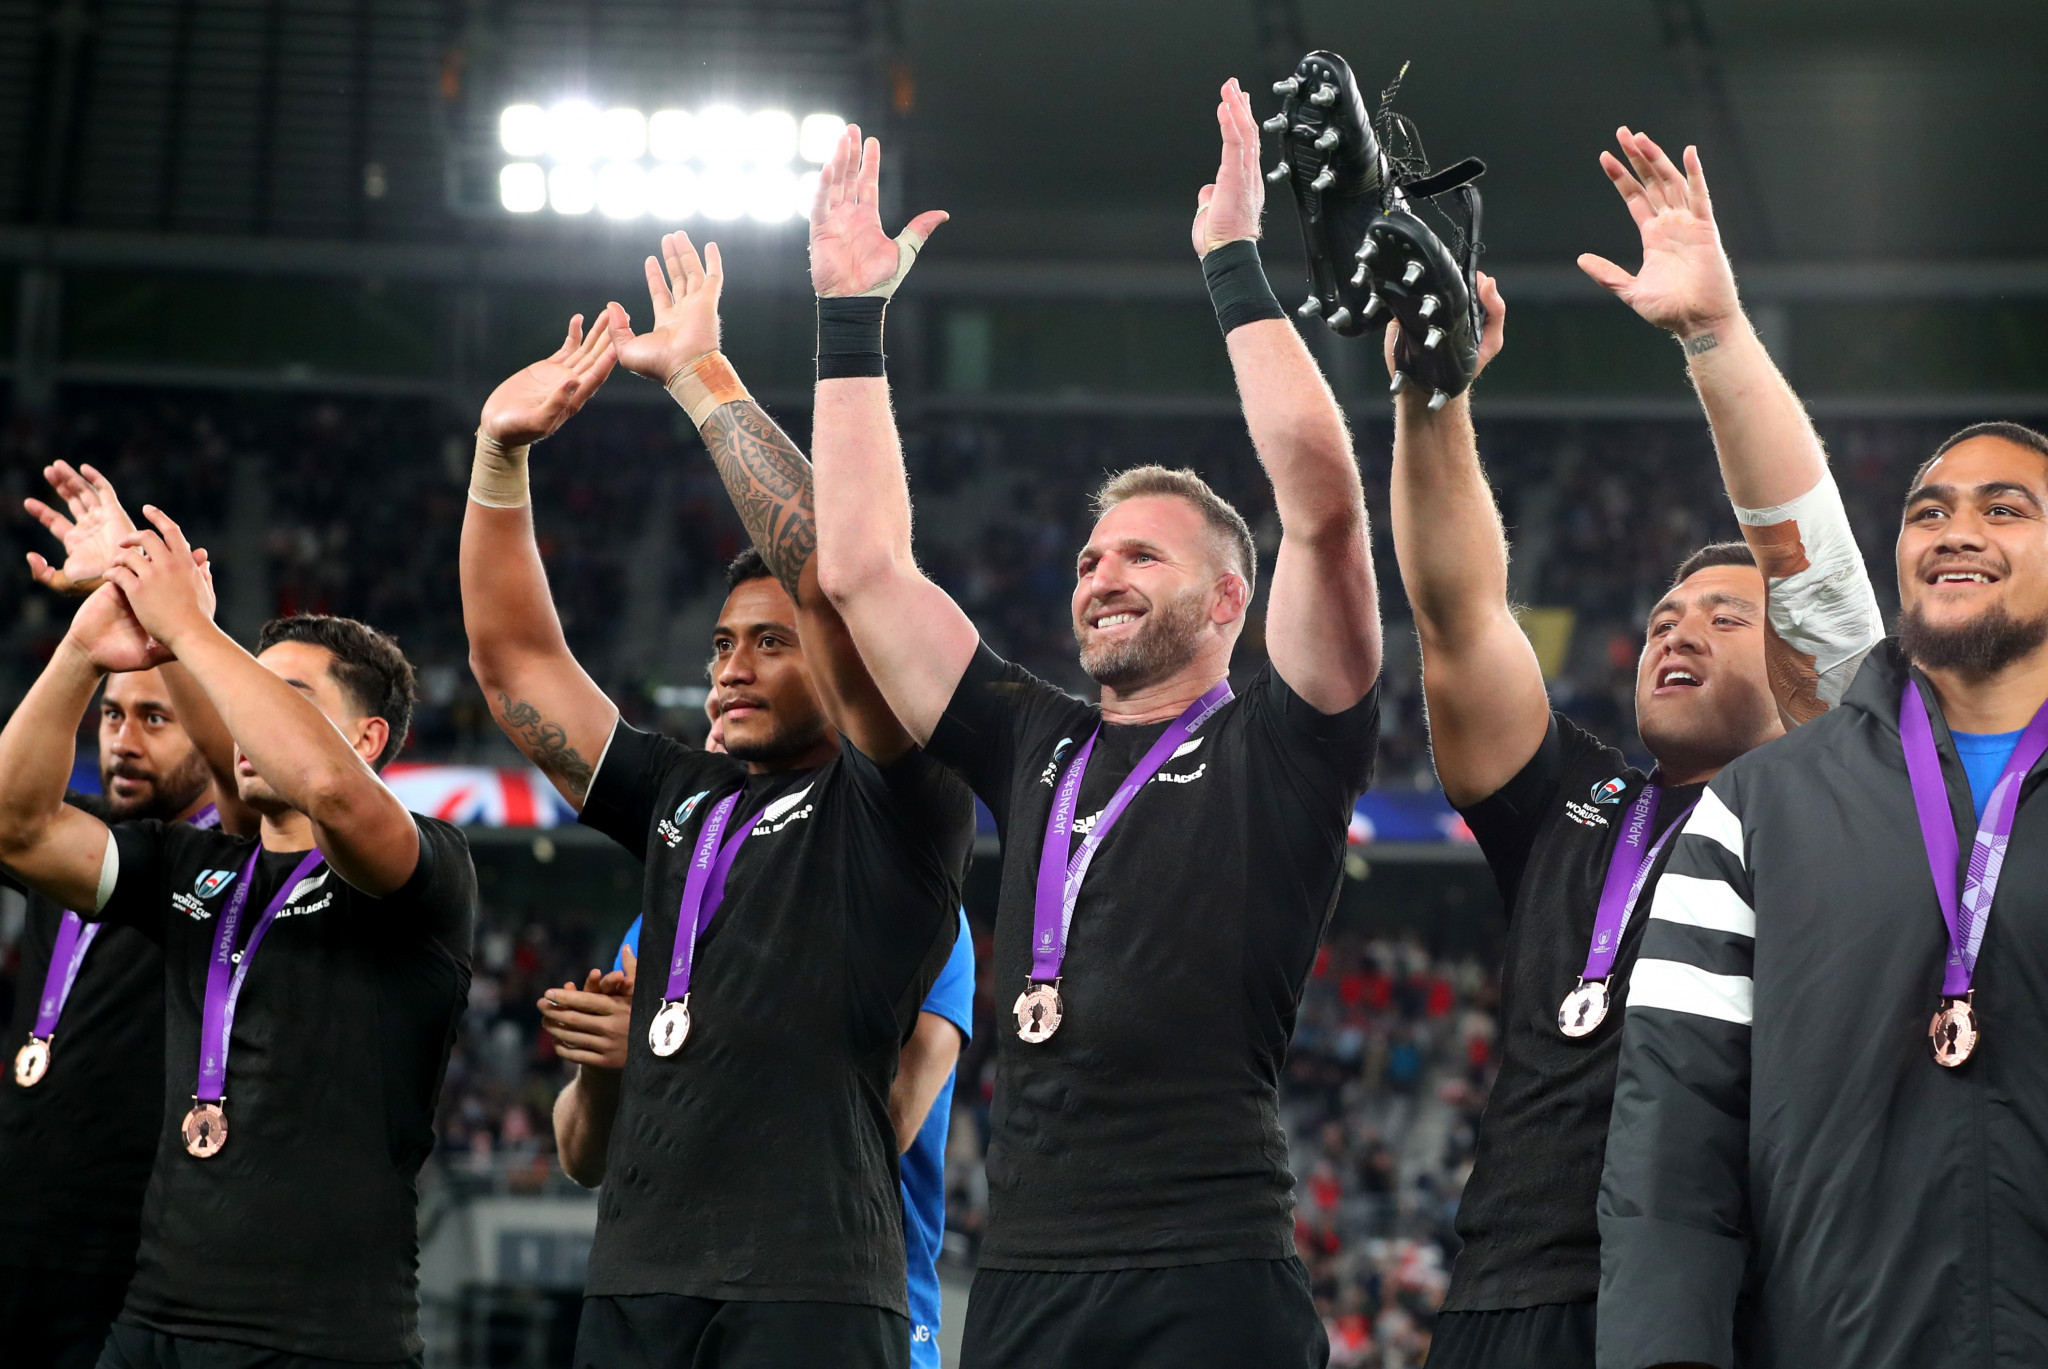 New Zealand took the bronze medal at the 2019 Rugby World Cup ©Getty Images